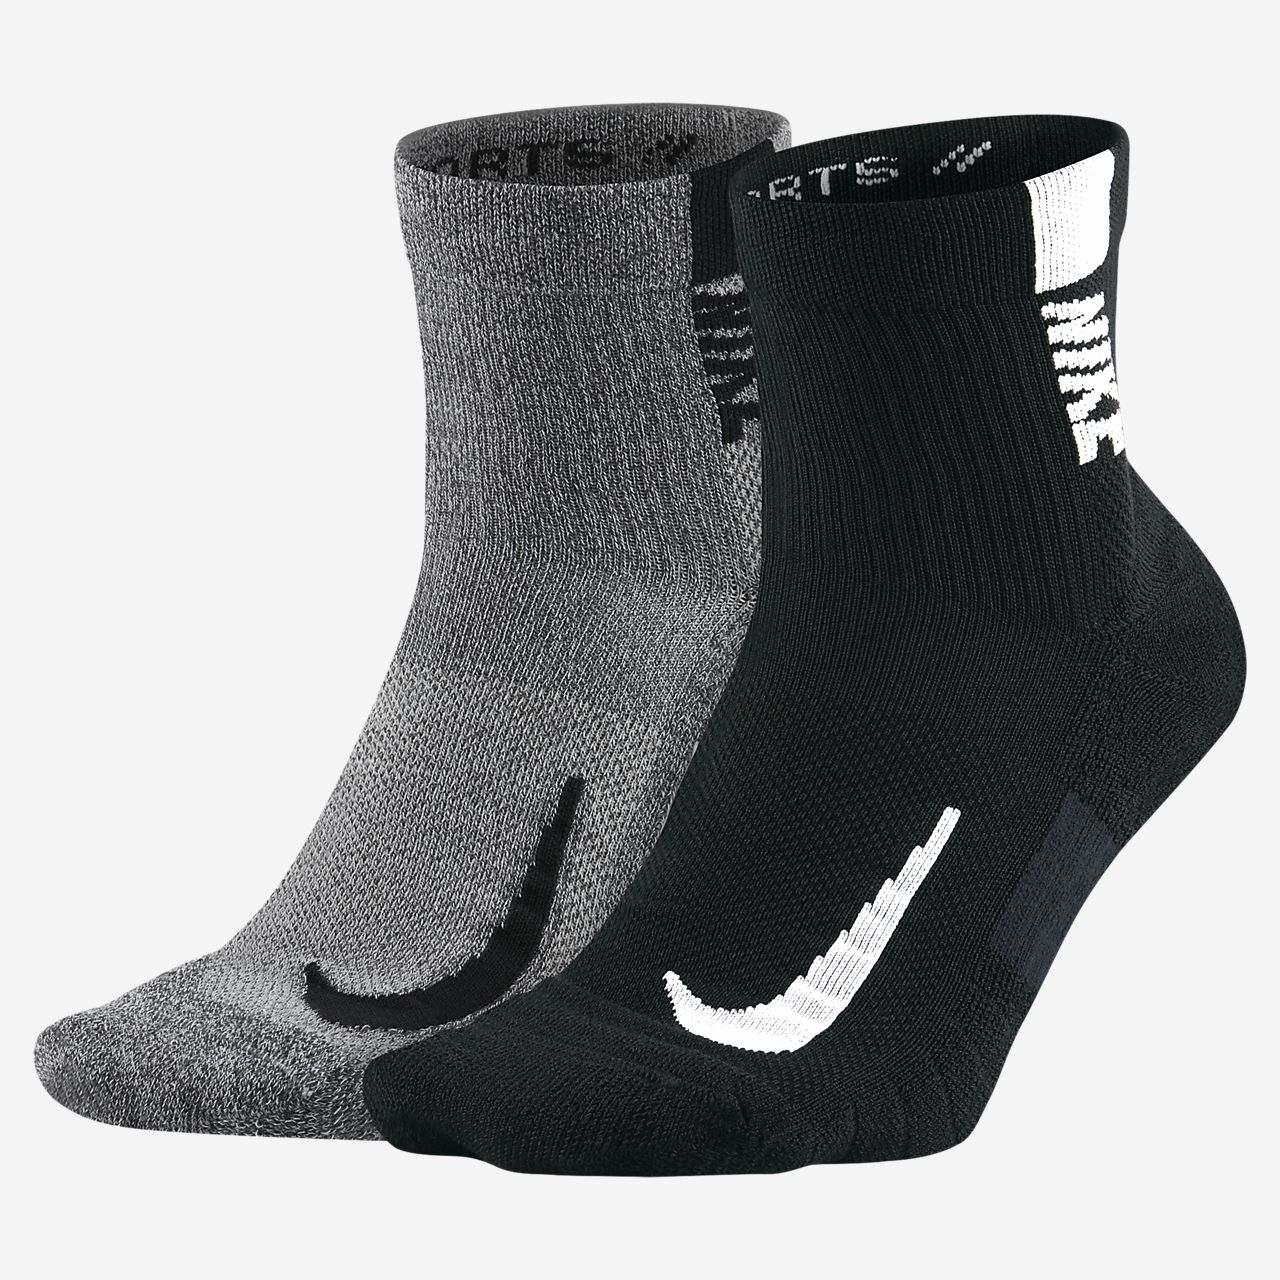 Nike Multiplier Ankle Socks (2 Pairs)